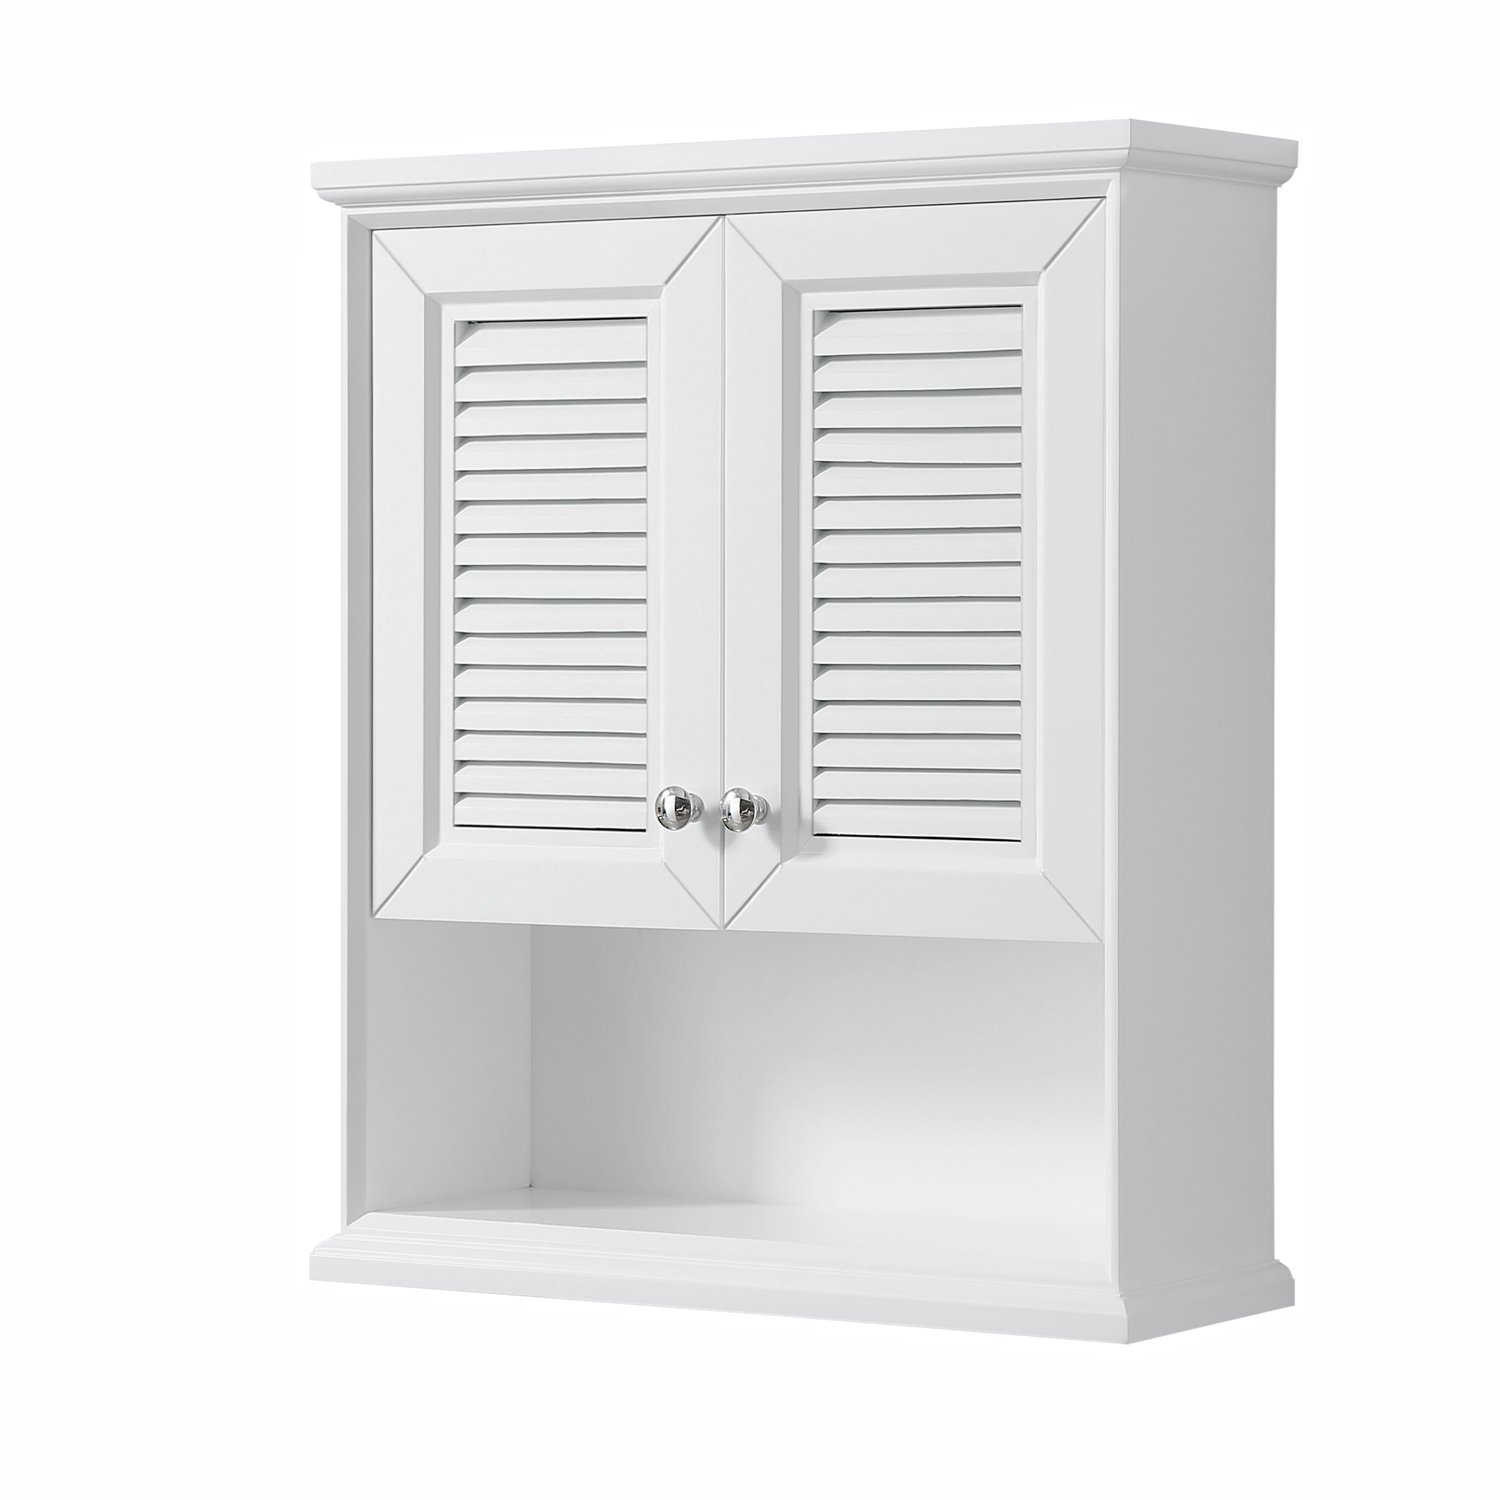 Wyndham Collection Tamara Wall-Mounted Storage Cabinet in White